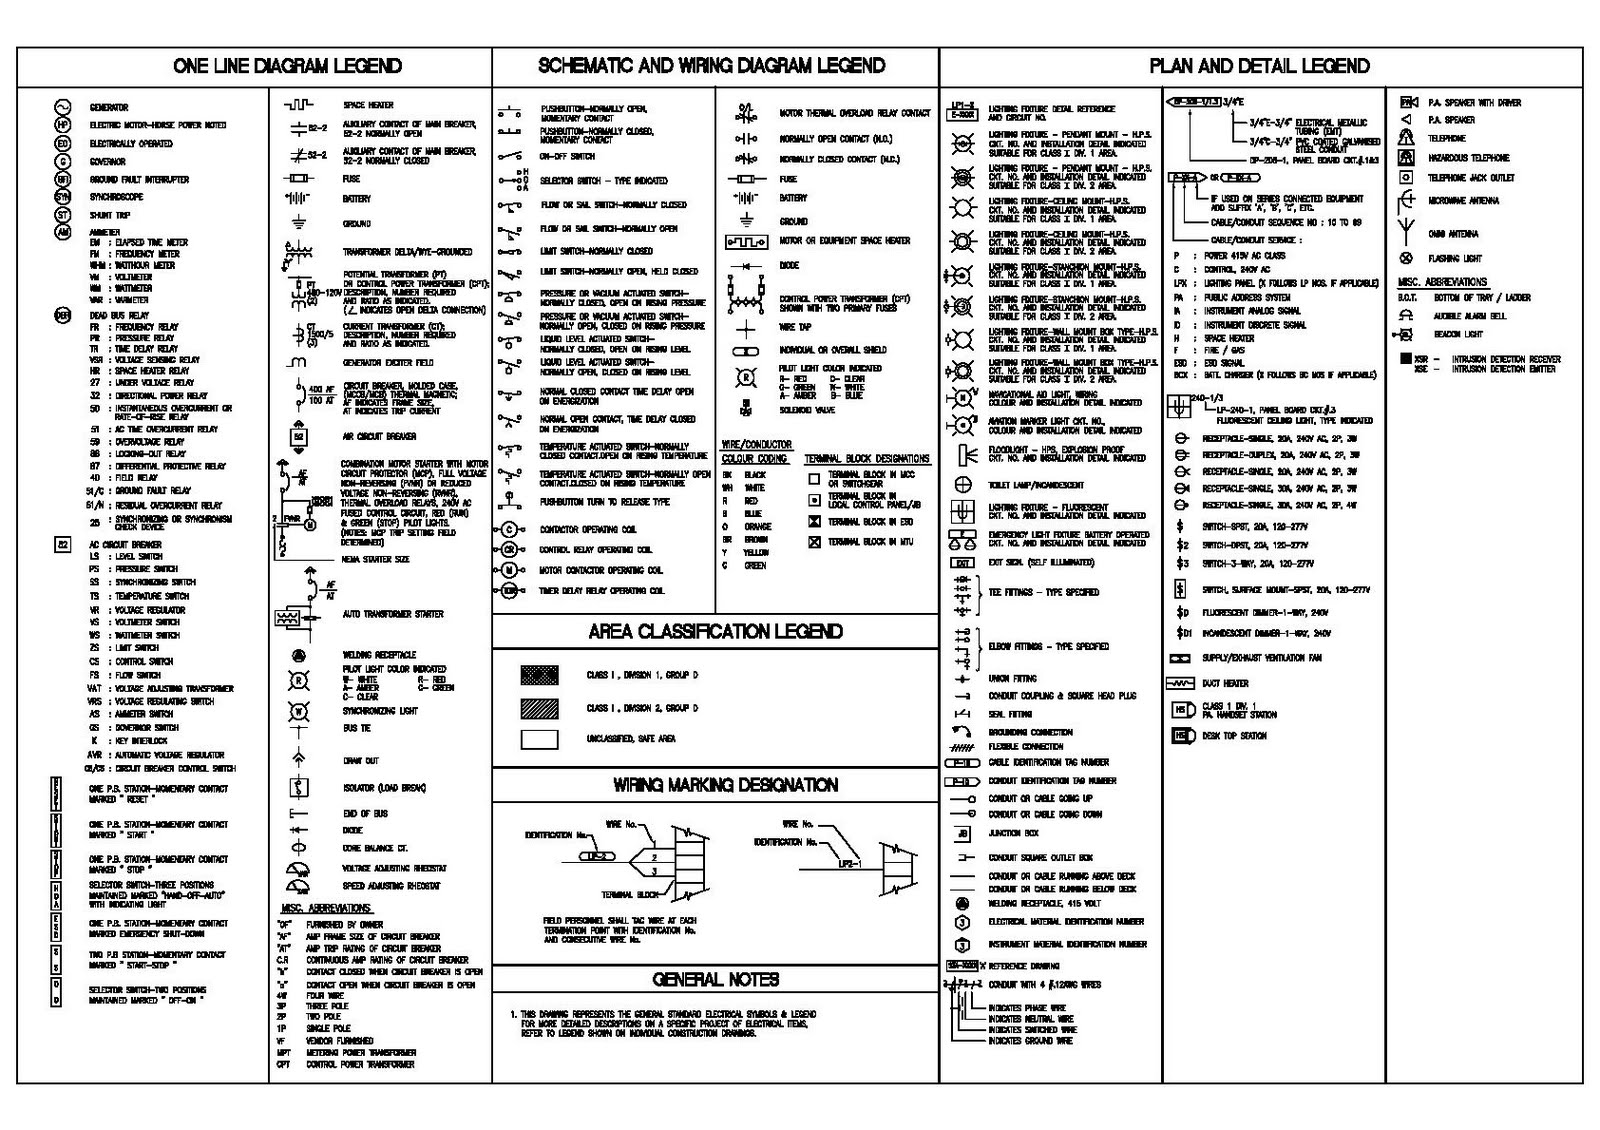 electrical plan legend australia wiring diagram rh s10 ruthdahm de